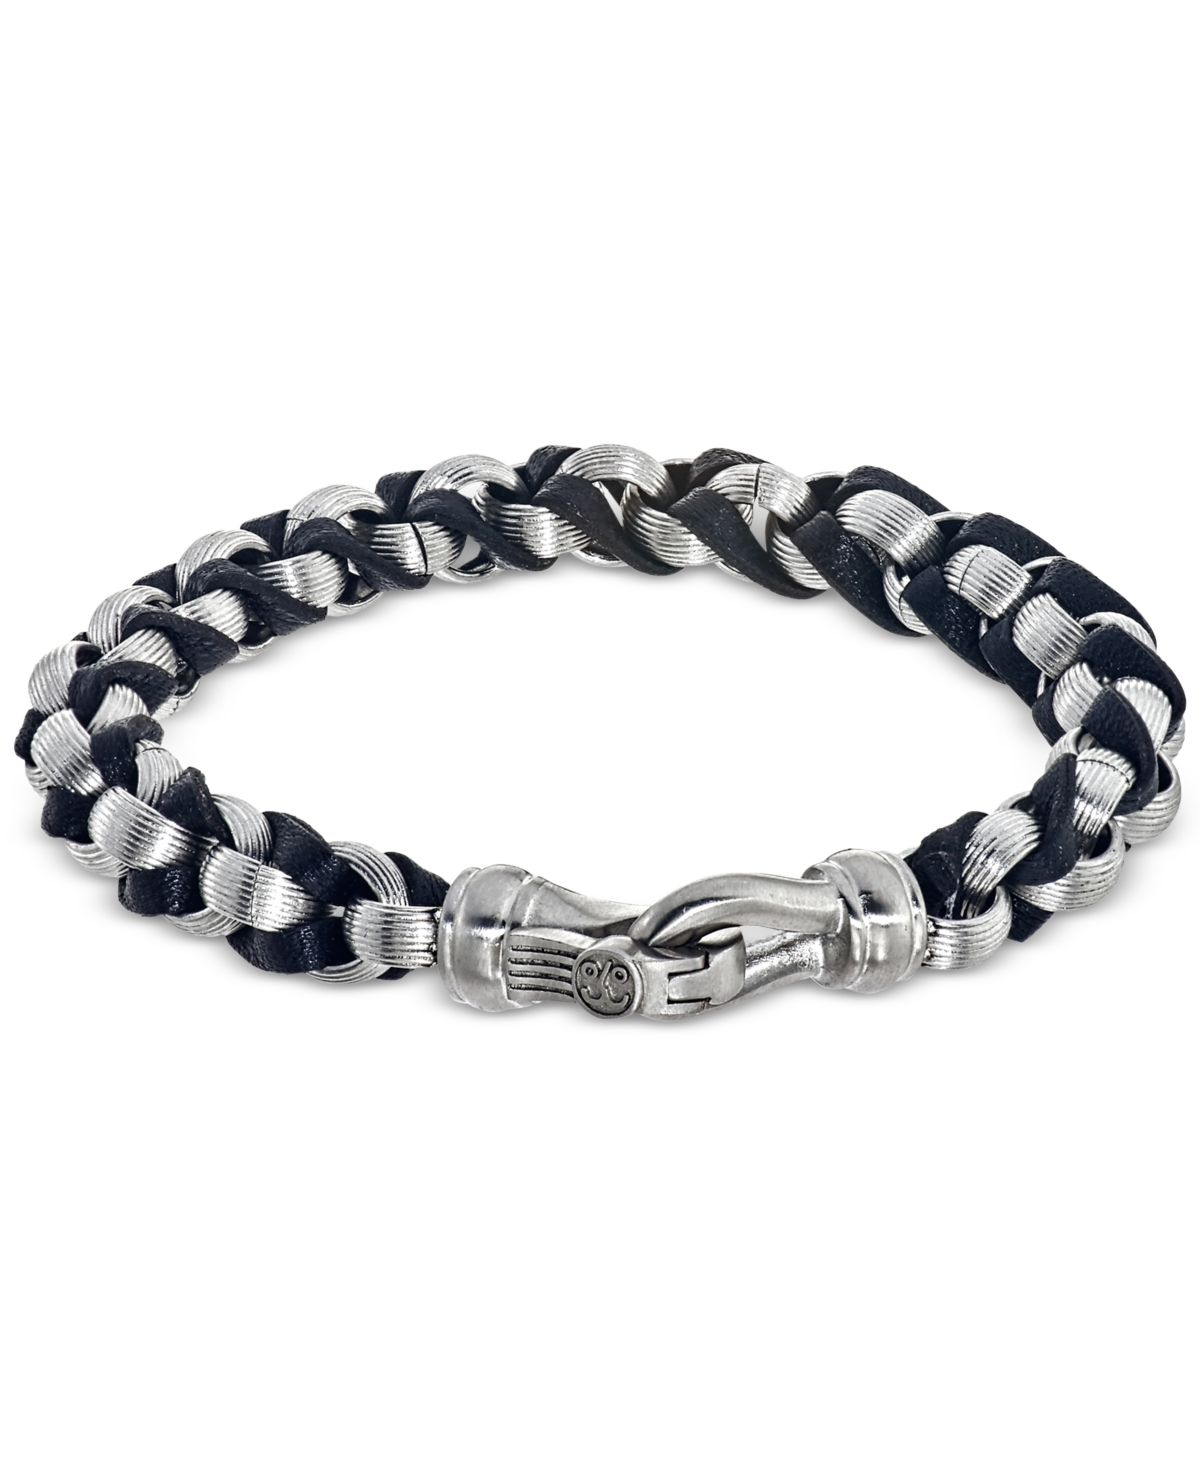 39+ Esquire mens jewelry reviews viral